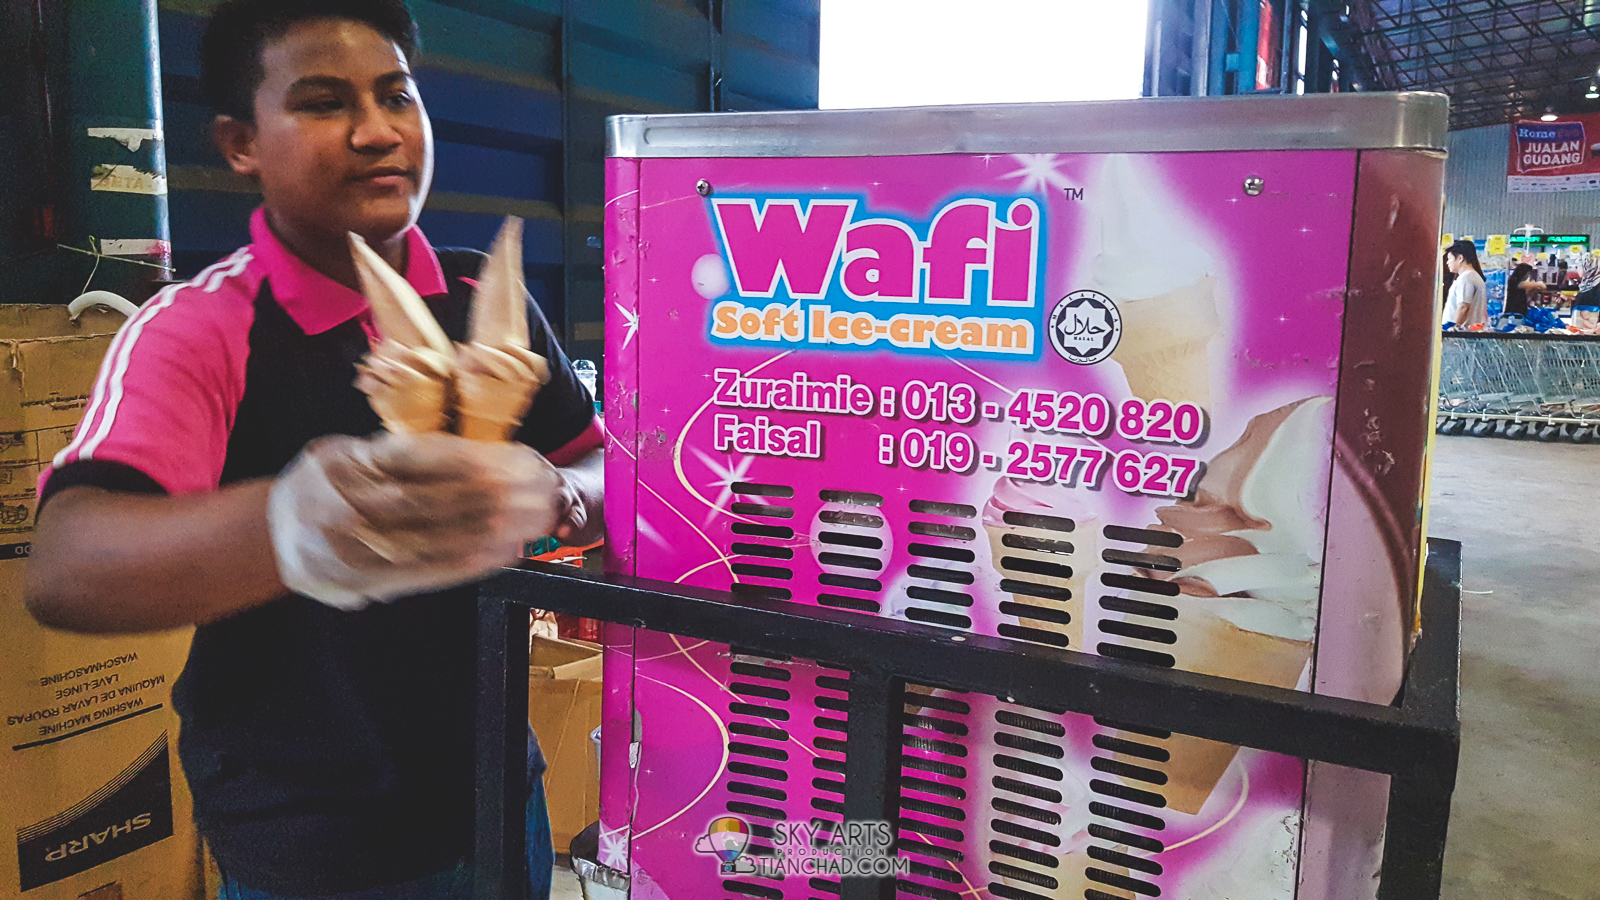 0299ae8d45d58 HOMEPRO WAREHOUSE SALE HomePro Jualan Gudang 2018 in Puchong - Free  ice-cream